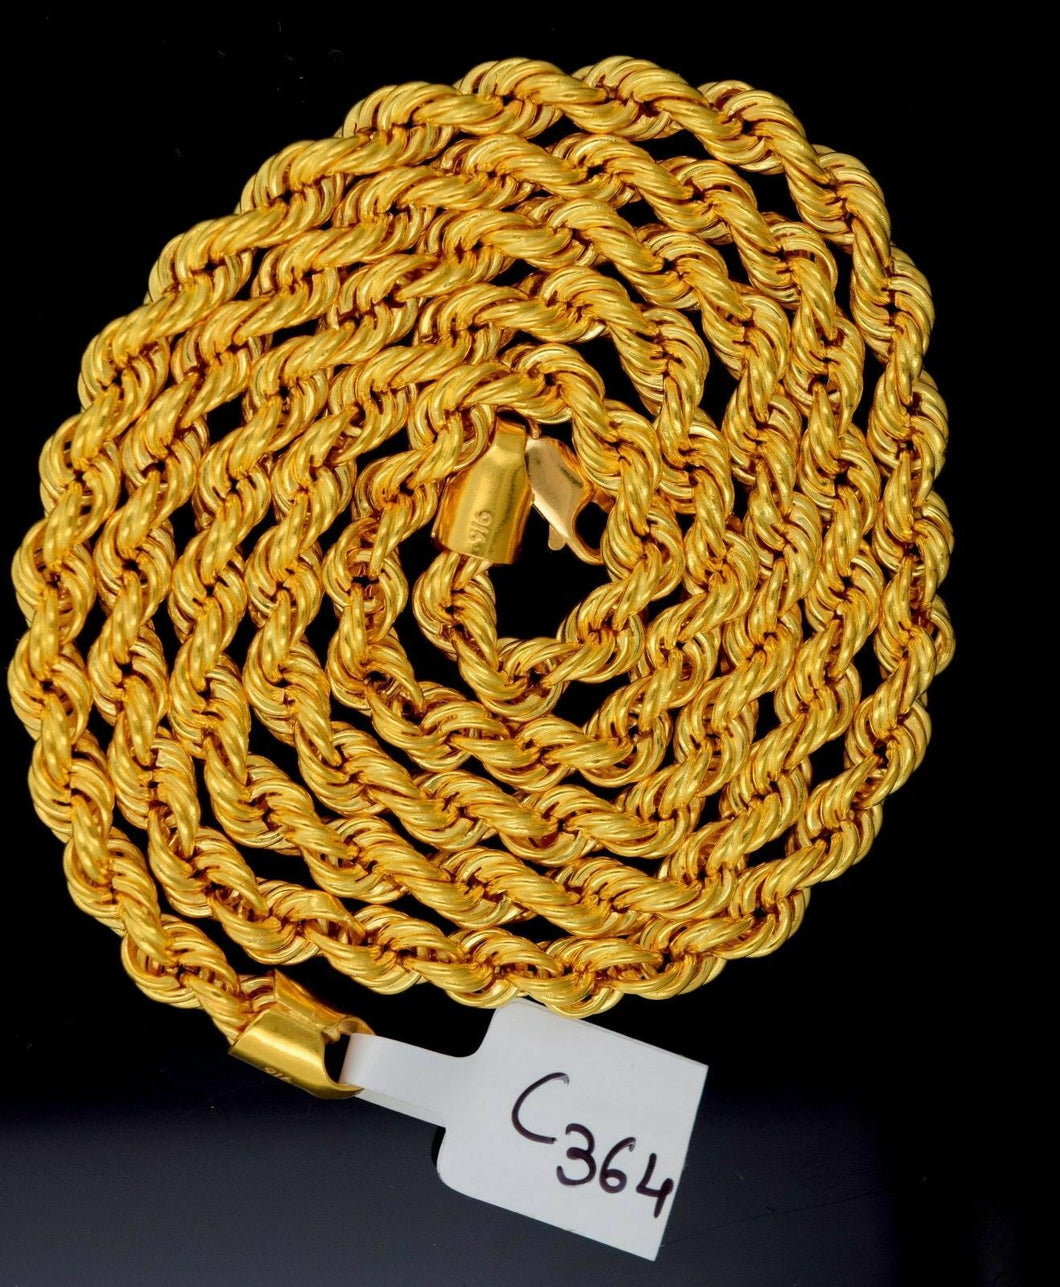 22k Jewelry Yellow Gold Rope Chain Solid Rope Necklace Modern Design 24